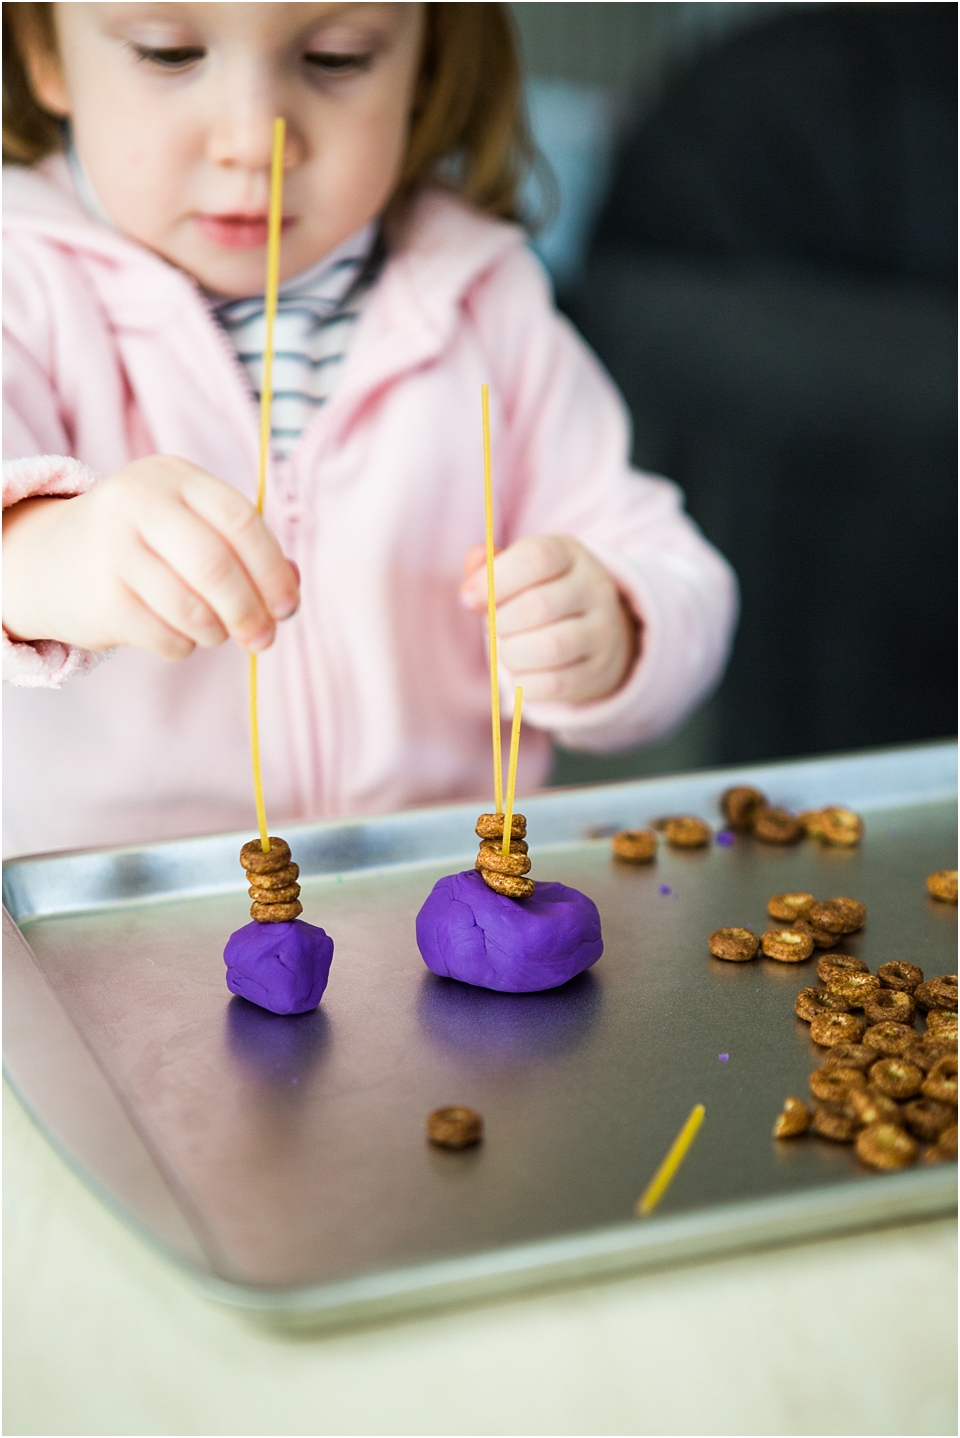 How to Teach Engineering to Preschoolers  #STEAM #STEAMActivities #STEMKids #STEM #EngineeringActivities #preschool #preschooler #preschoollearning #STEAMpreschool